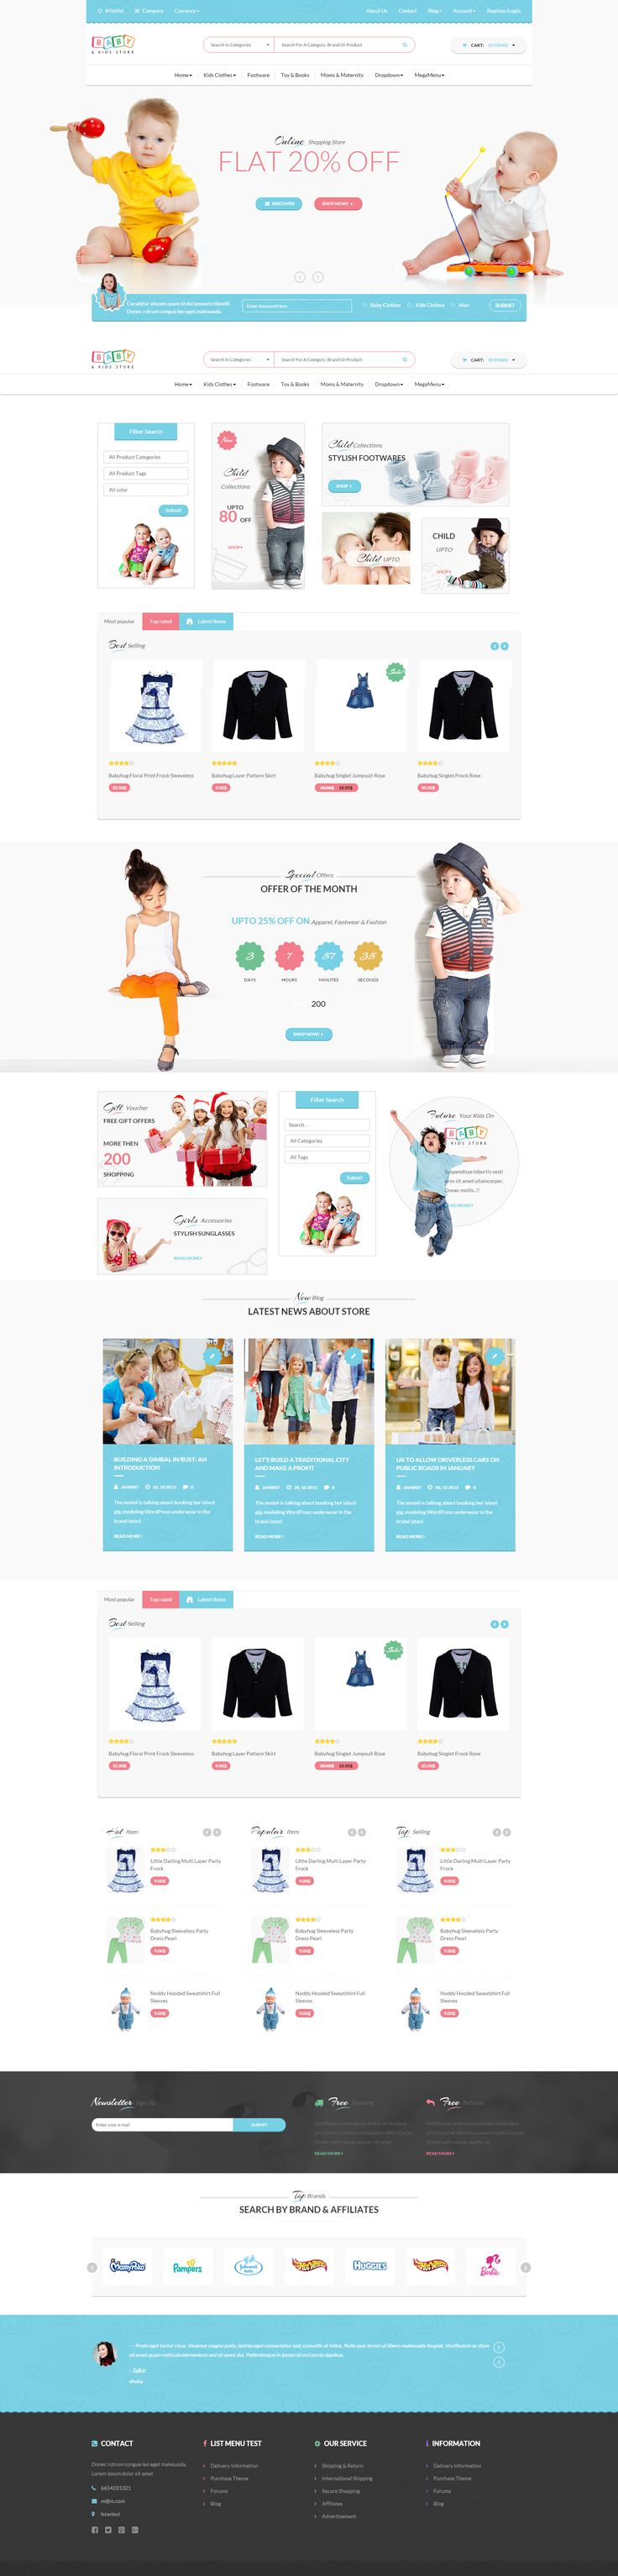 Template Kids Store WooCommerce PSD. For baby / child / kids candy, toys, clothing or fashion e-commerce online shop / store websites.